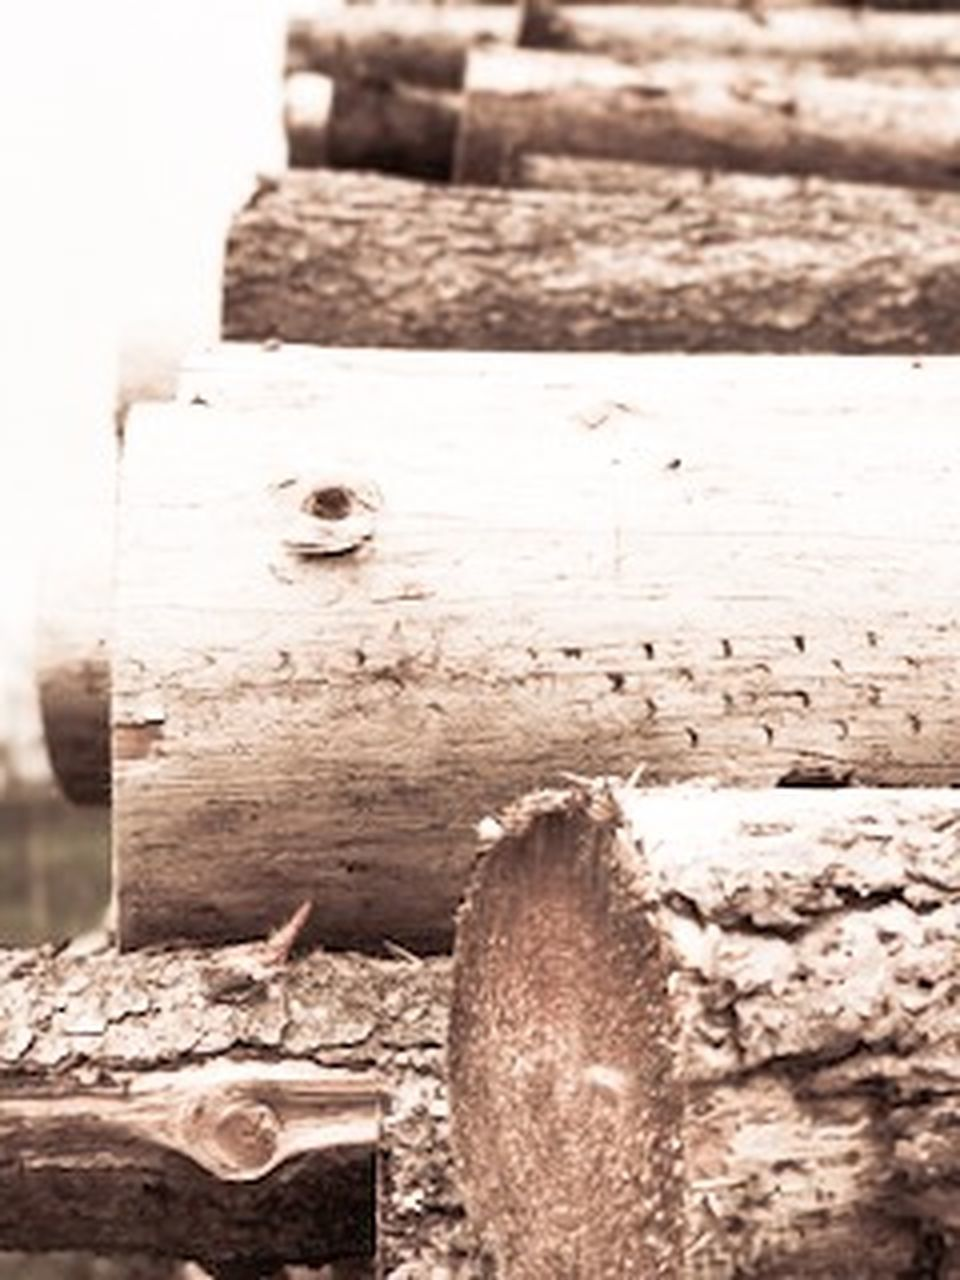 wood - material, no people, outdoors, day, rustic, close-up